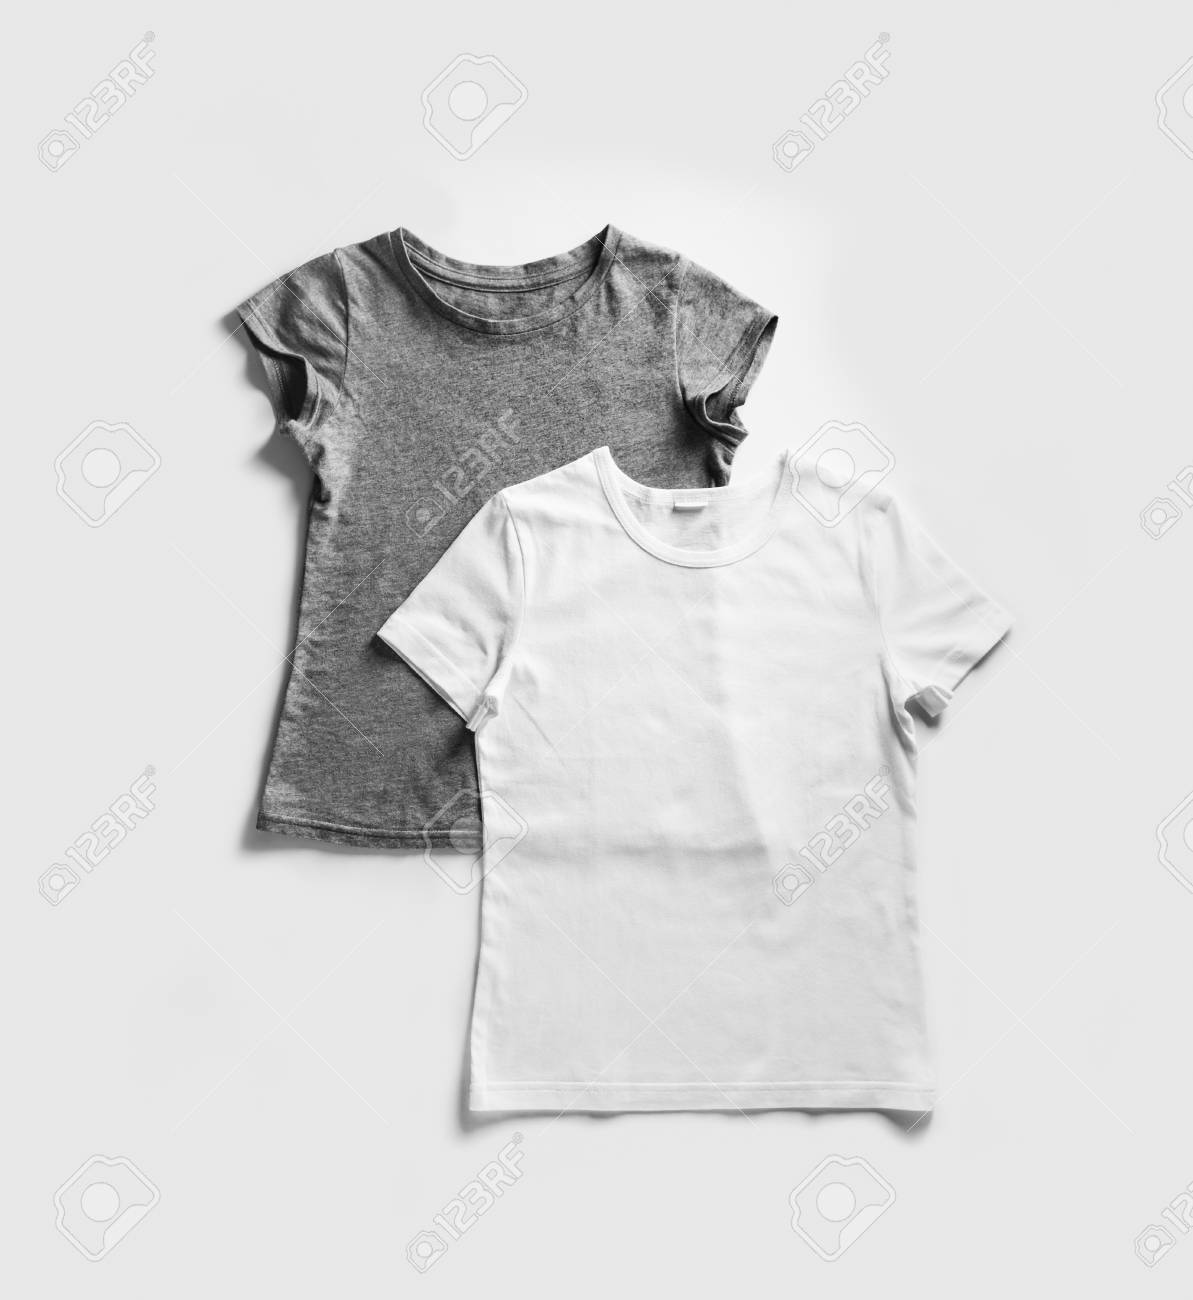 c5d3ab9d Blank white and gray t-shirts for your design on white paper background.  Tshirt